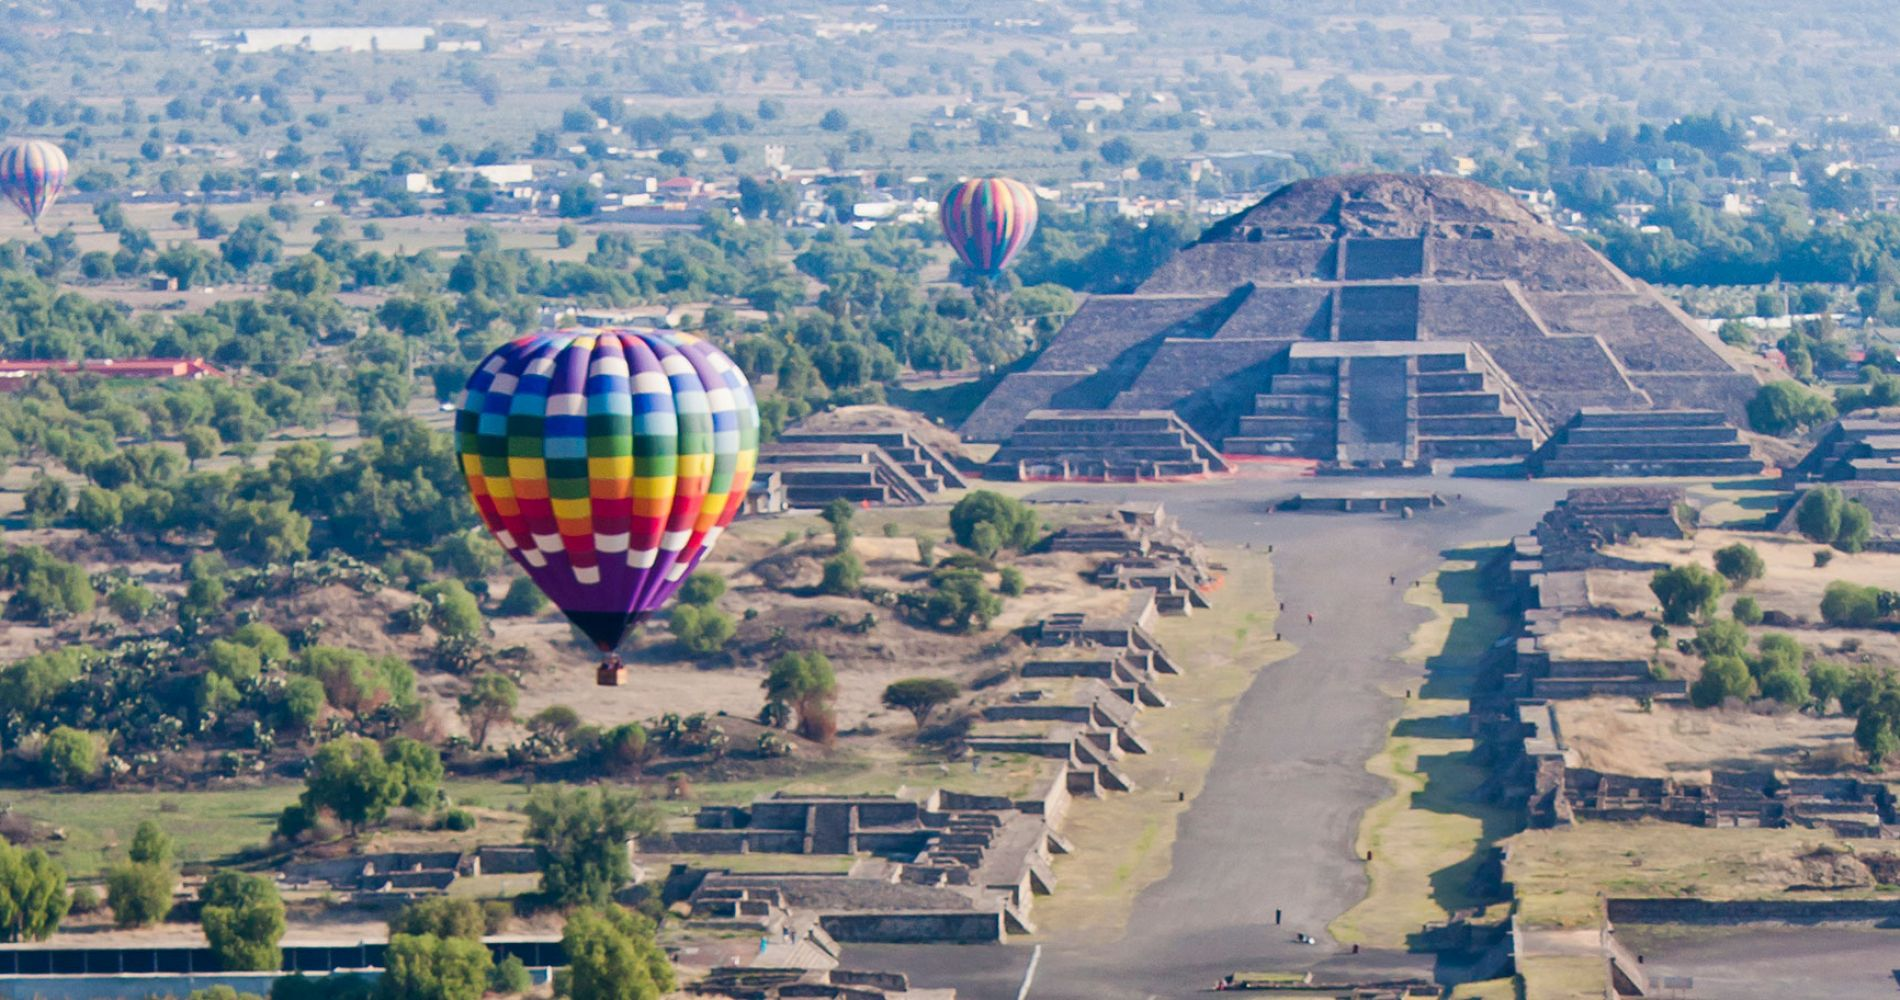 Sunrise balloon ride over Mexico's Teotihuacan Pyramids